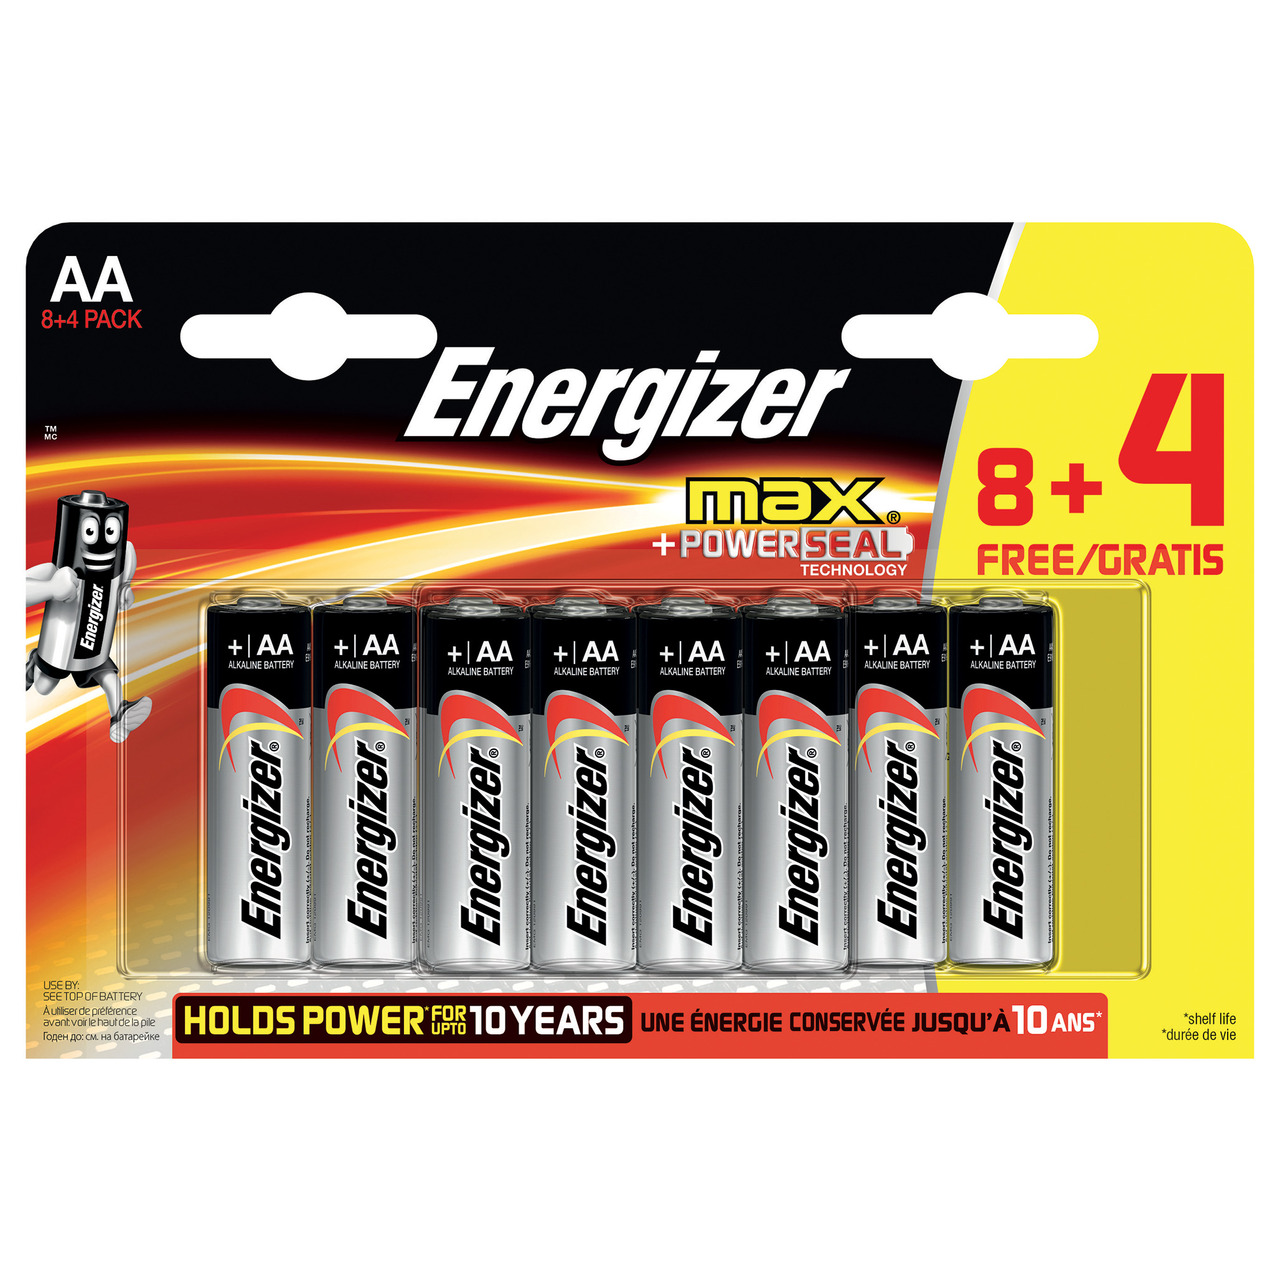 Energizer Max Alkaline Batterie Mignon AA- 8+4 Sparpack